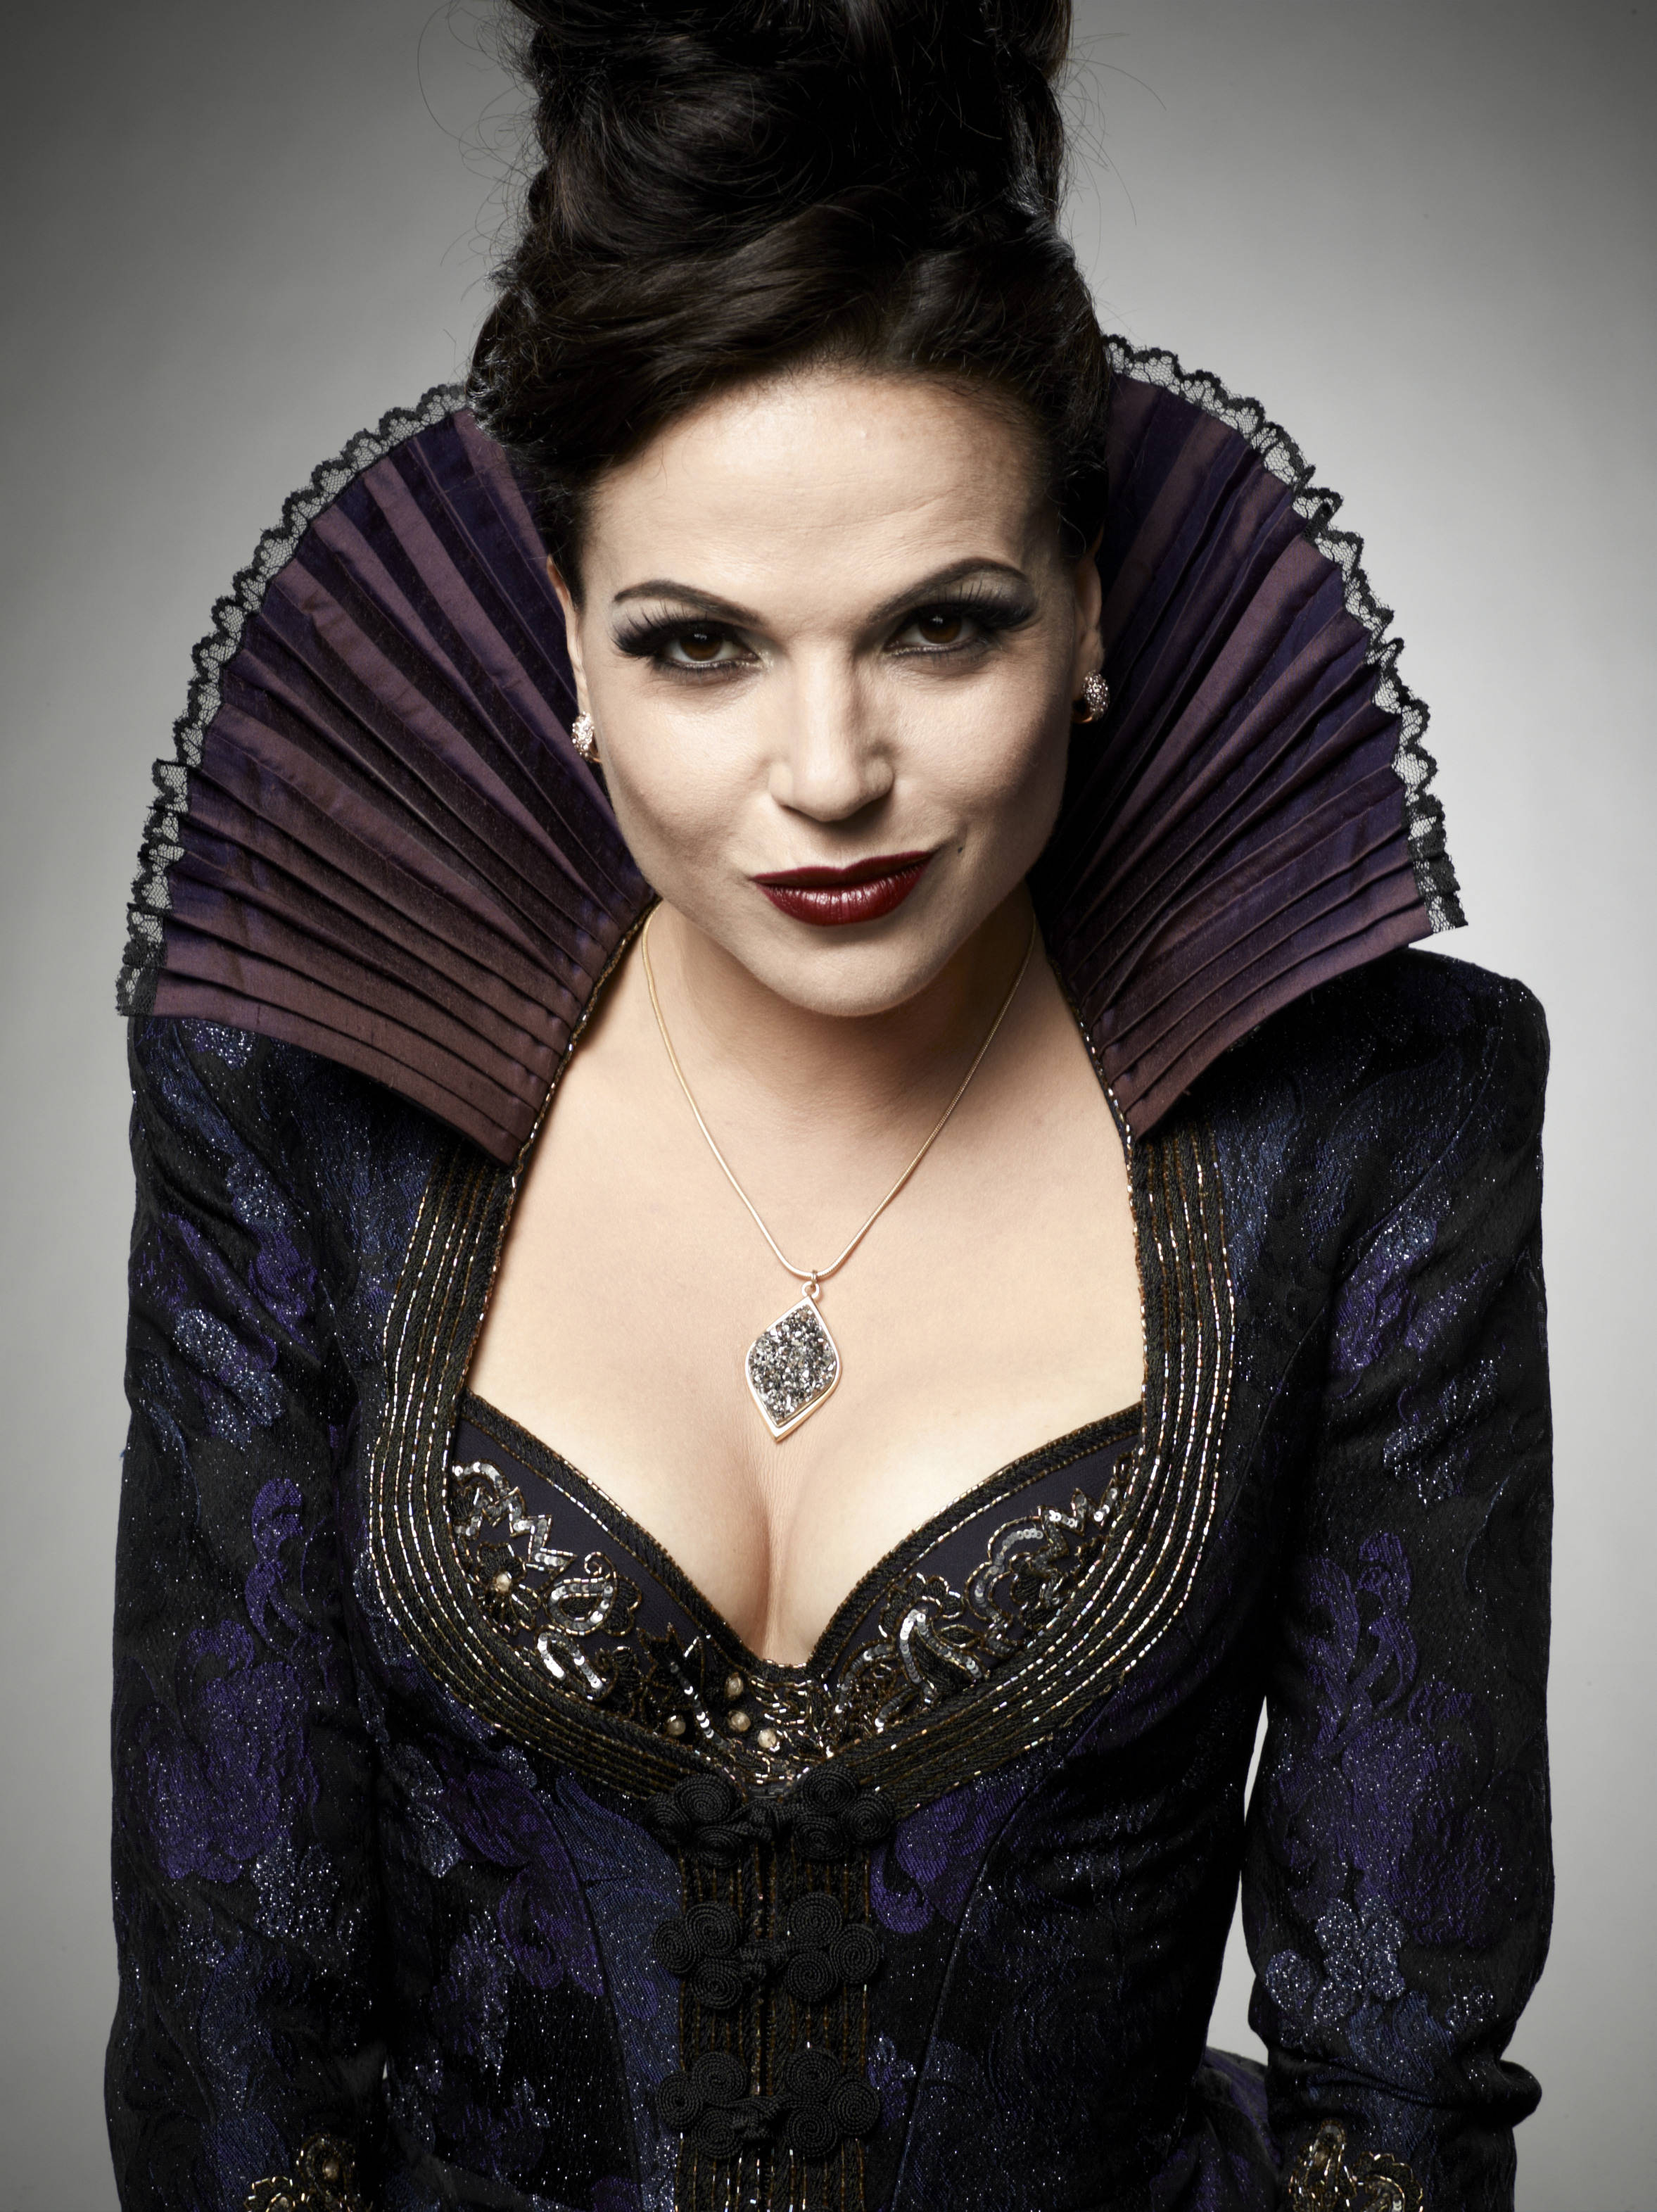 Image result for regina once upon a time images